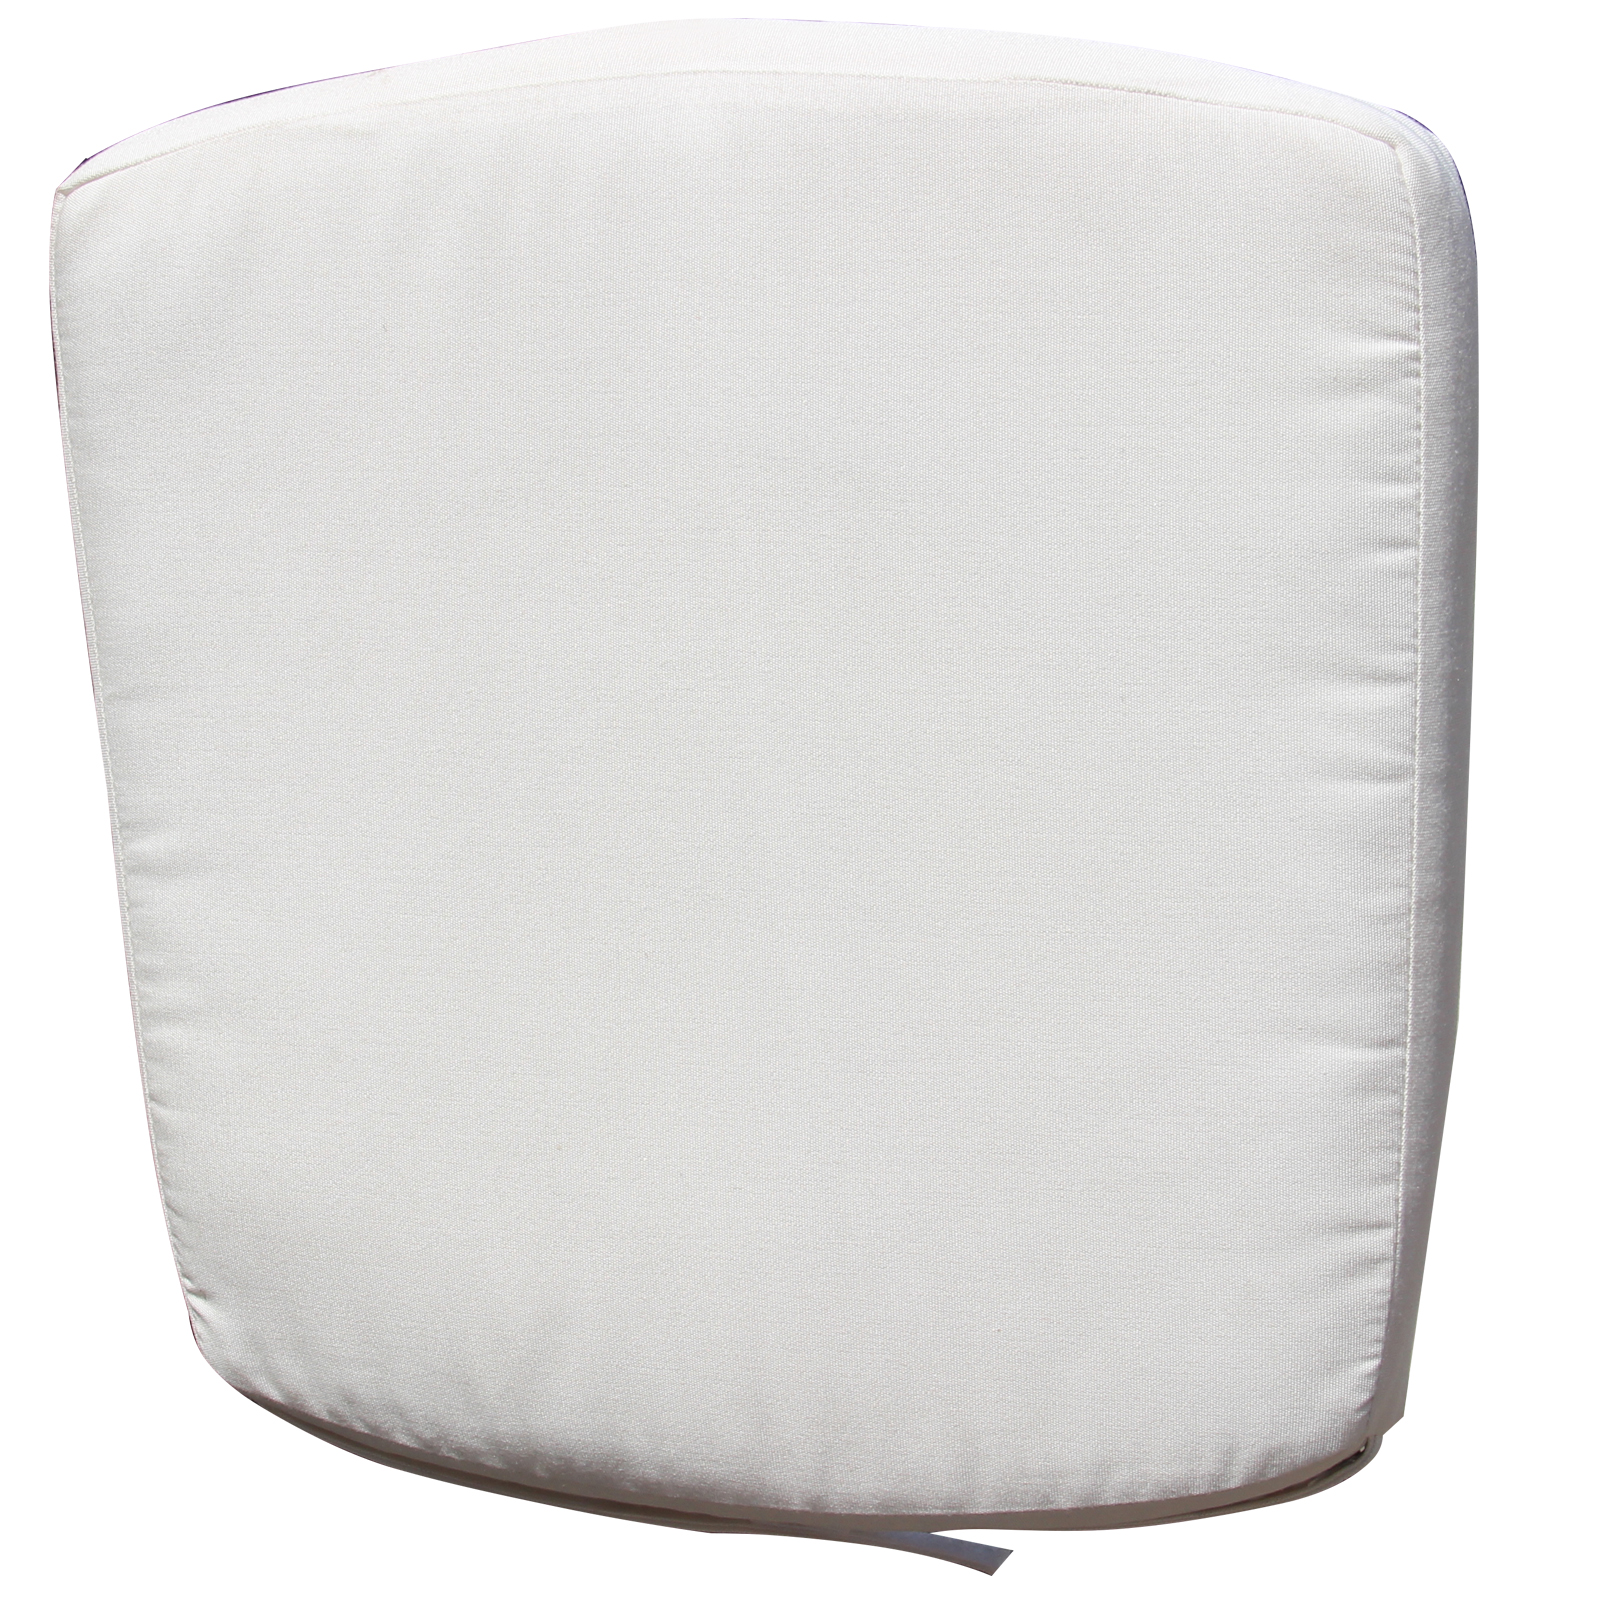 new sunbrella seat pad outdoor cushions removable tie on chair cover washable ebay. Black Bedroom Furniture Sets. Home Design Ideas